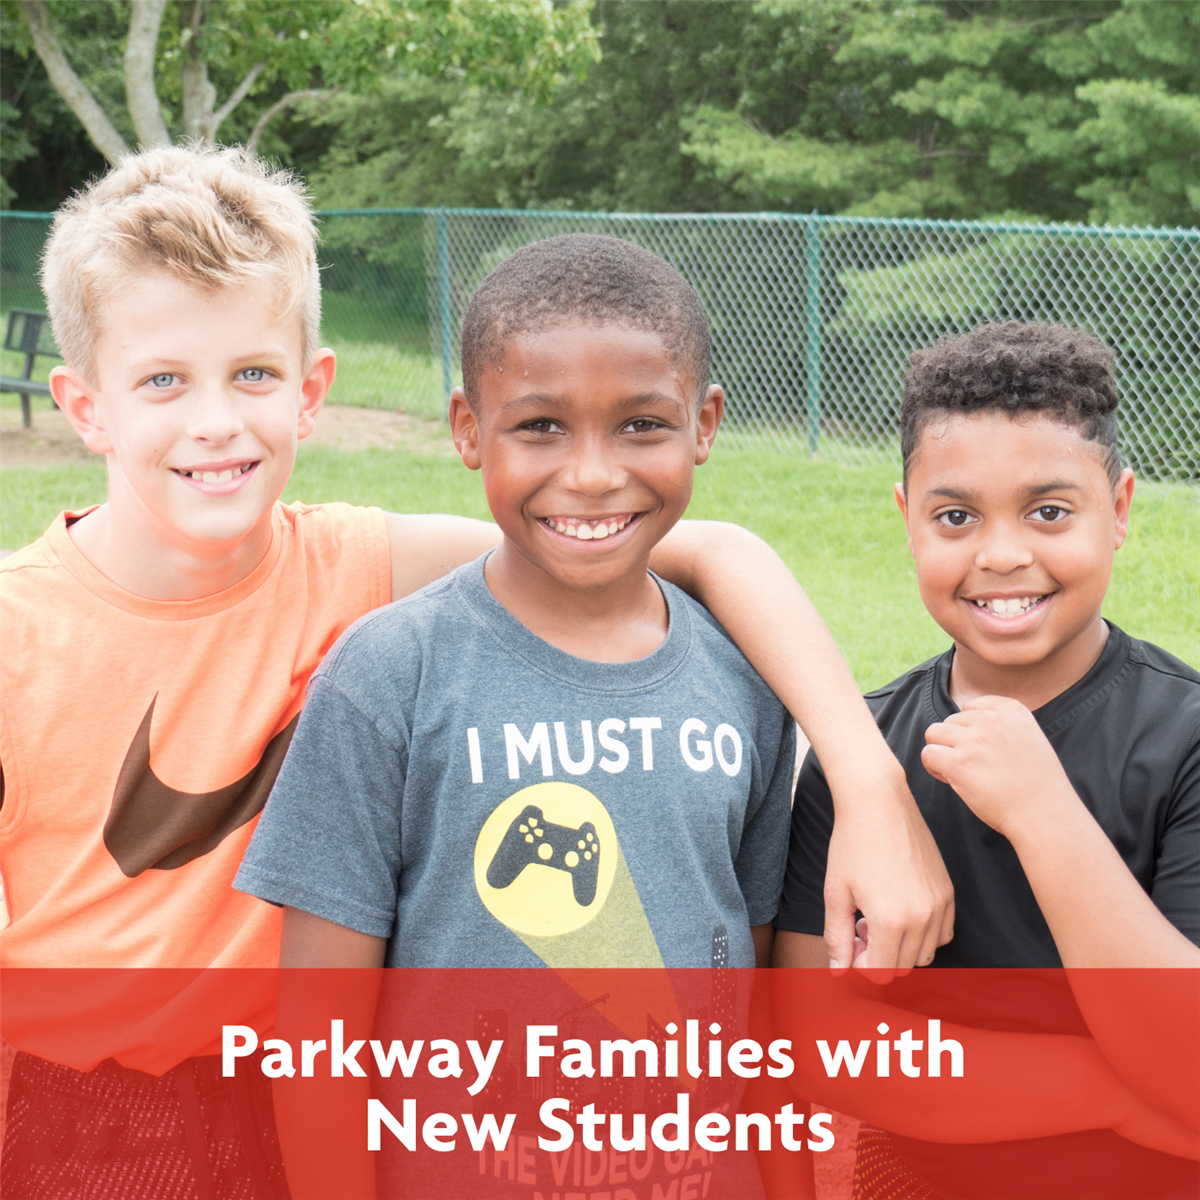 Parkway Families with New Students